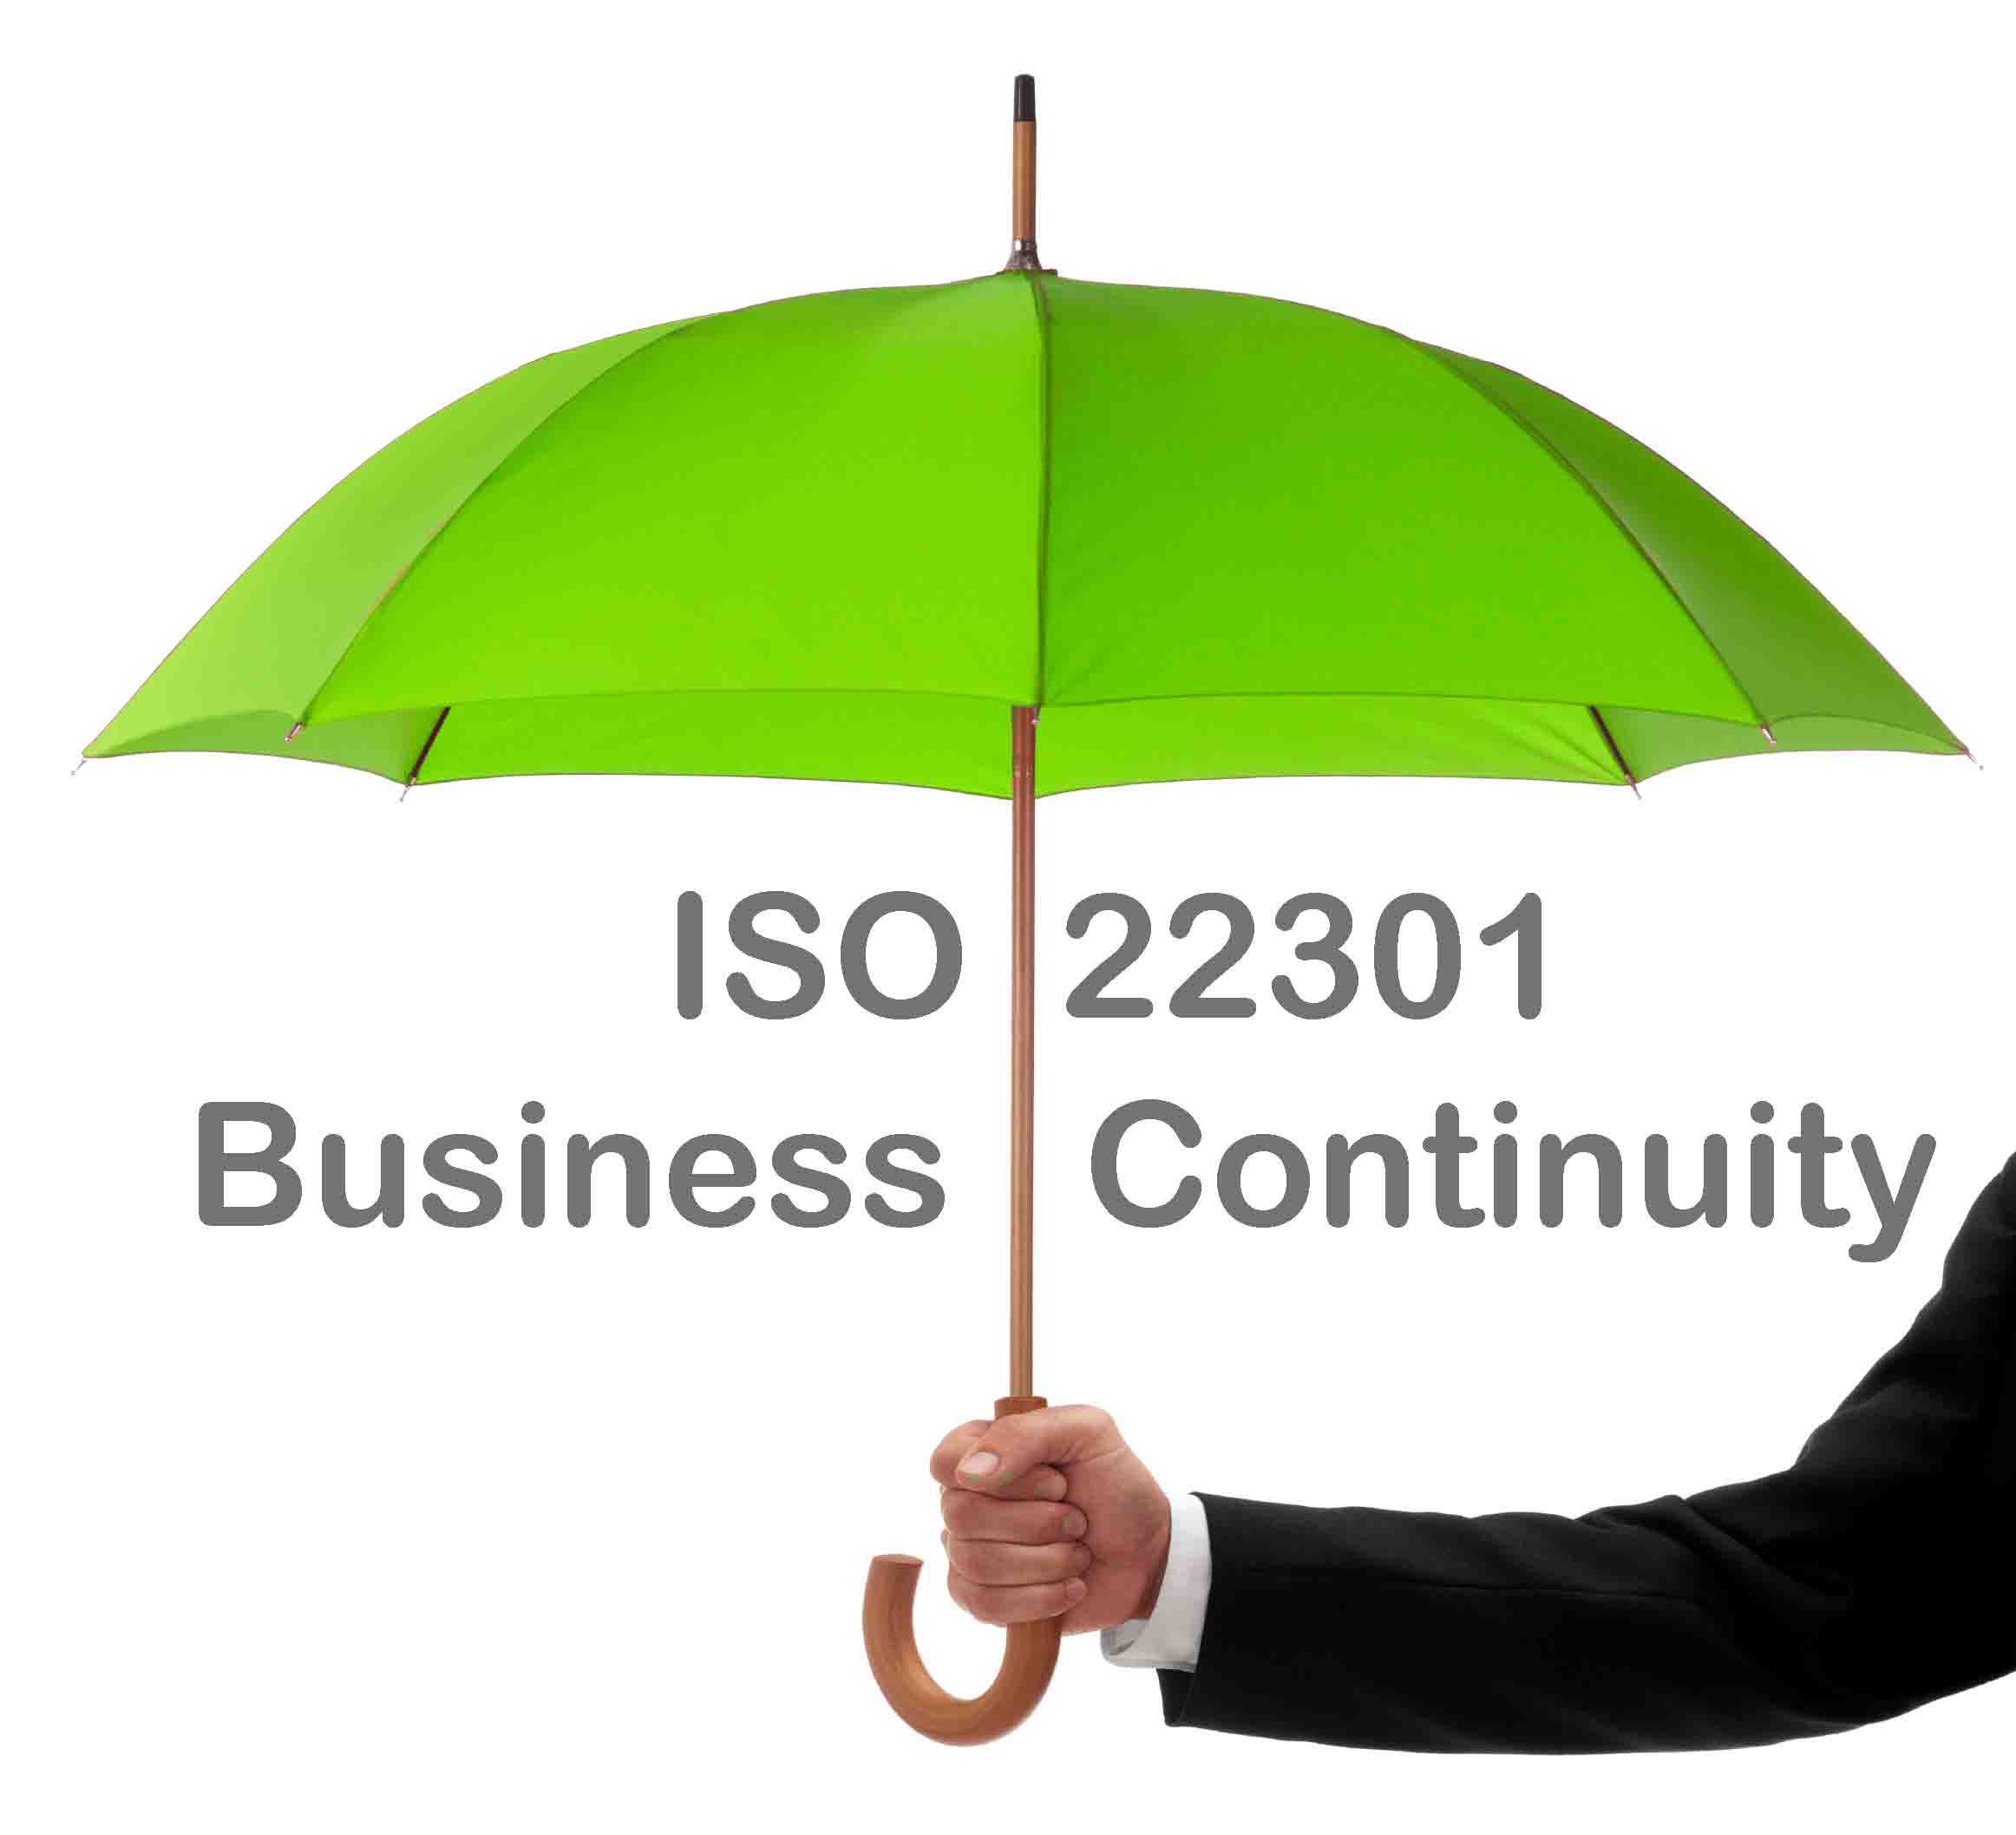 A To Z Of Business Continuity  Oak Consult. How Do Improve My Credit Score. How Does A Respirator Work Medical School Nj. Beauty School West Palm Beach. Removing Personal Information From Internet. How To Improve My Credit Score Fast And Easy. Pax Et Bonum Pronunciation Big Data Las Vegas. Starting An App Development Company. Becoming A Methodist Minister